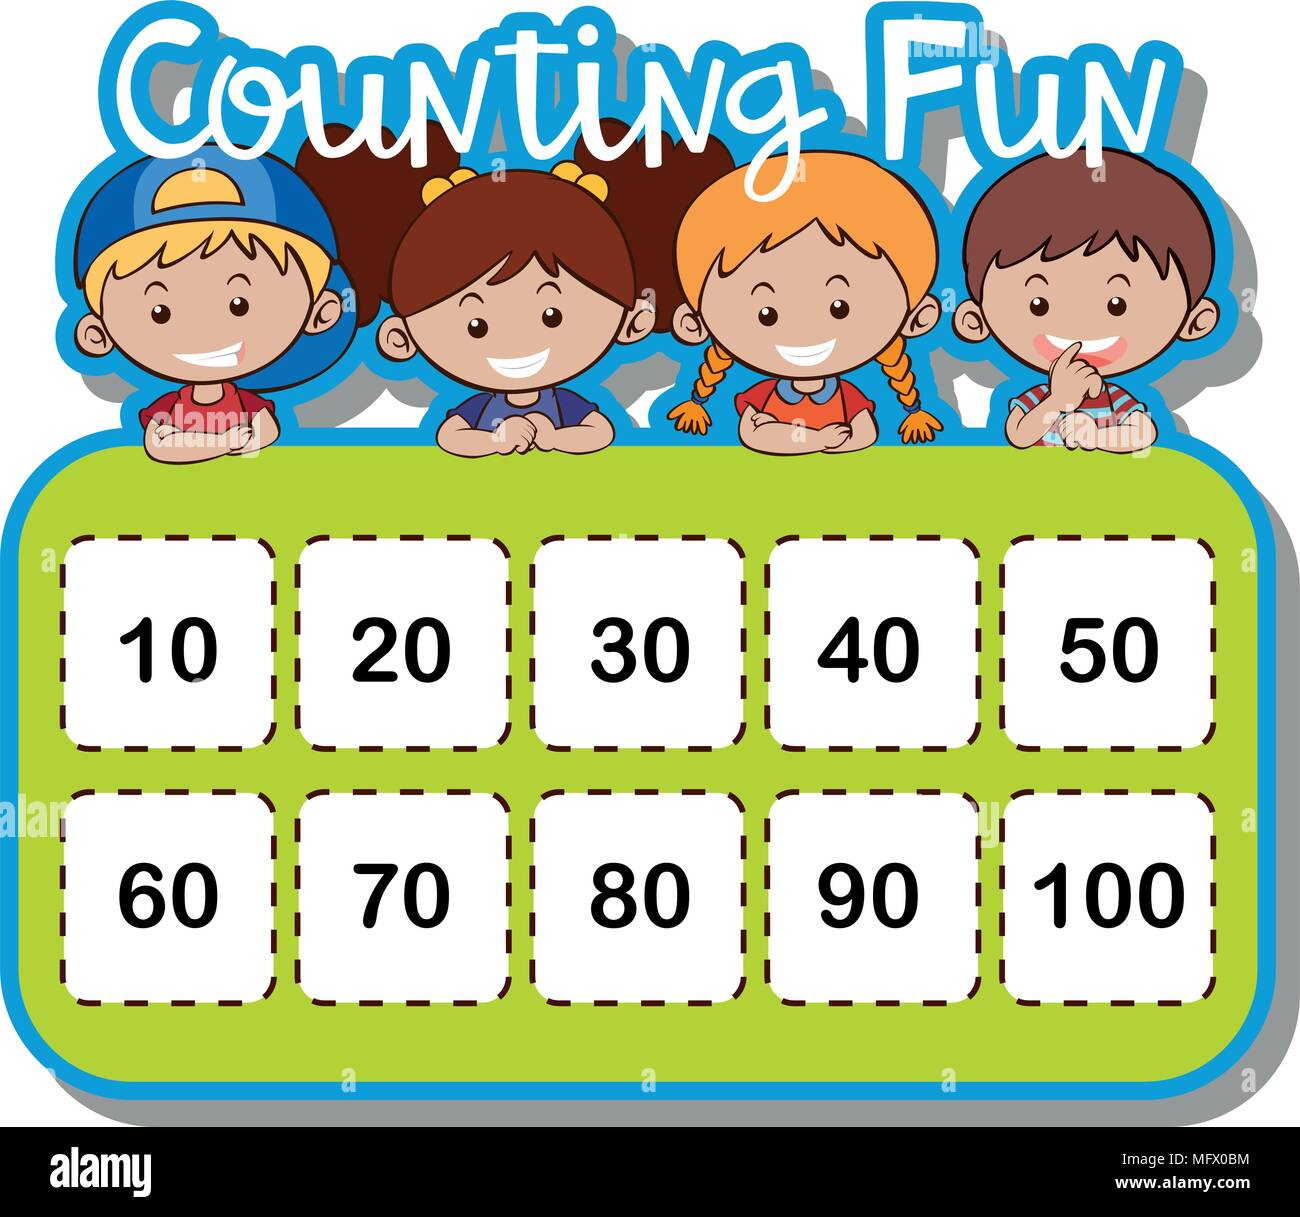 Math Worksheet For Counting Numbers Illustration Stock